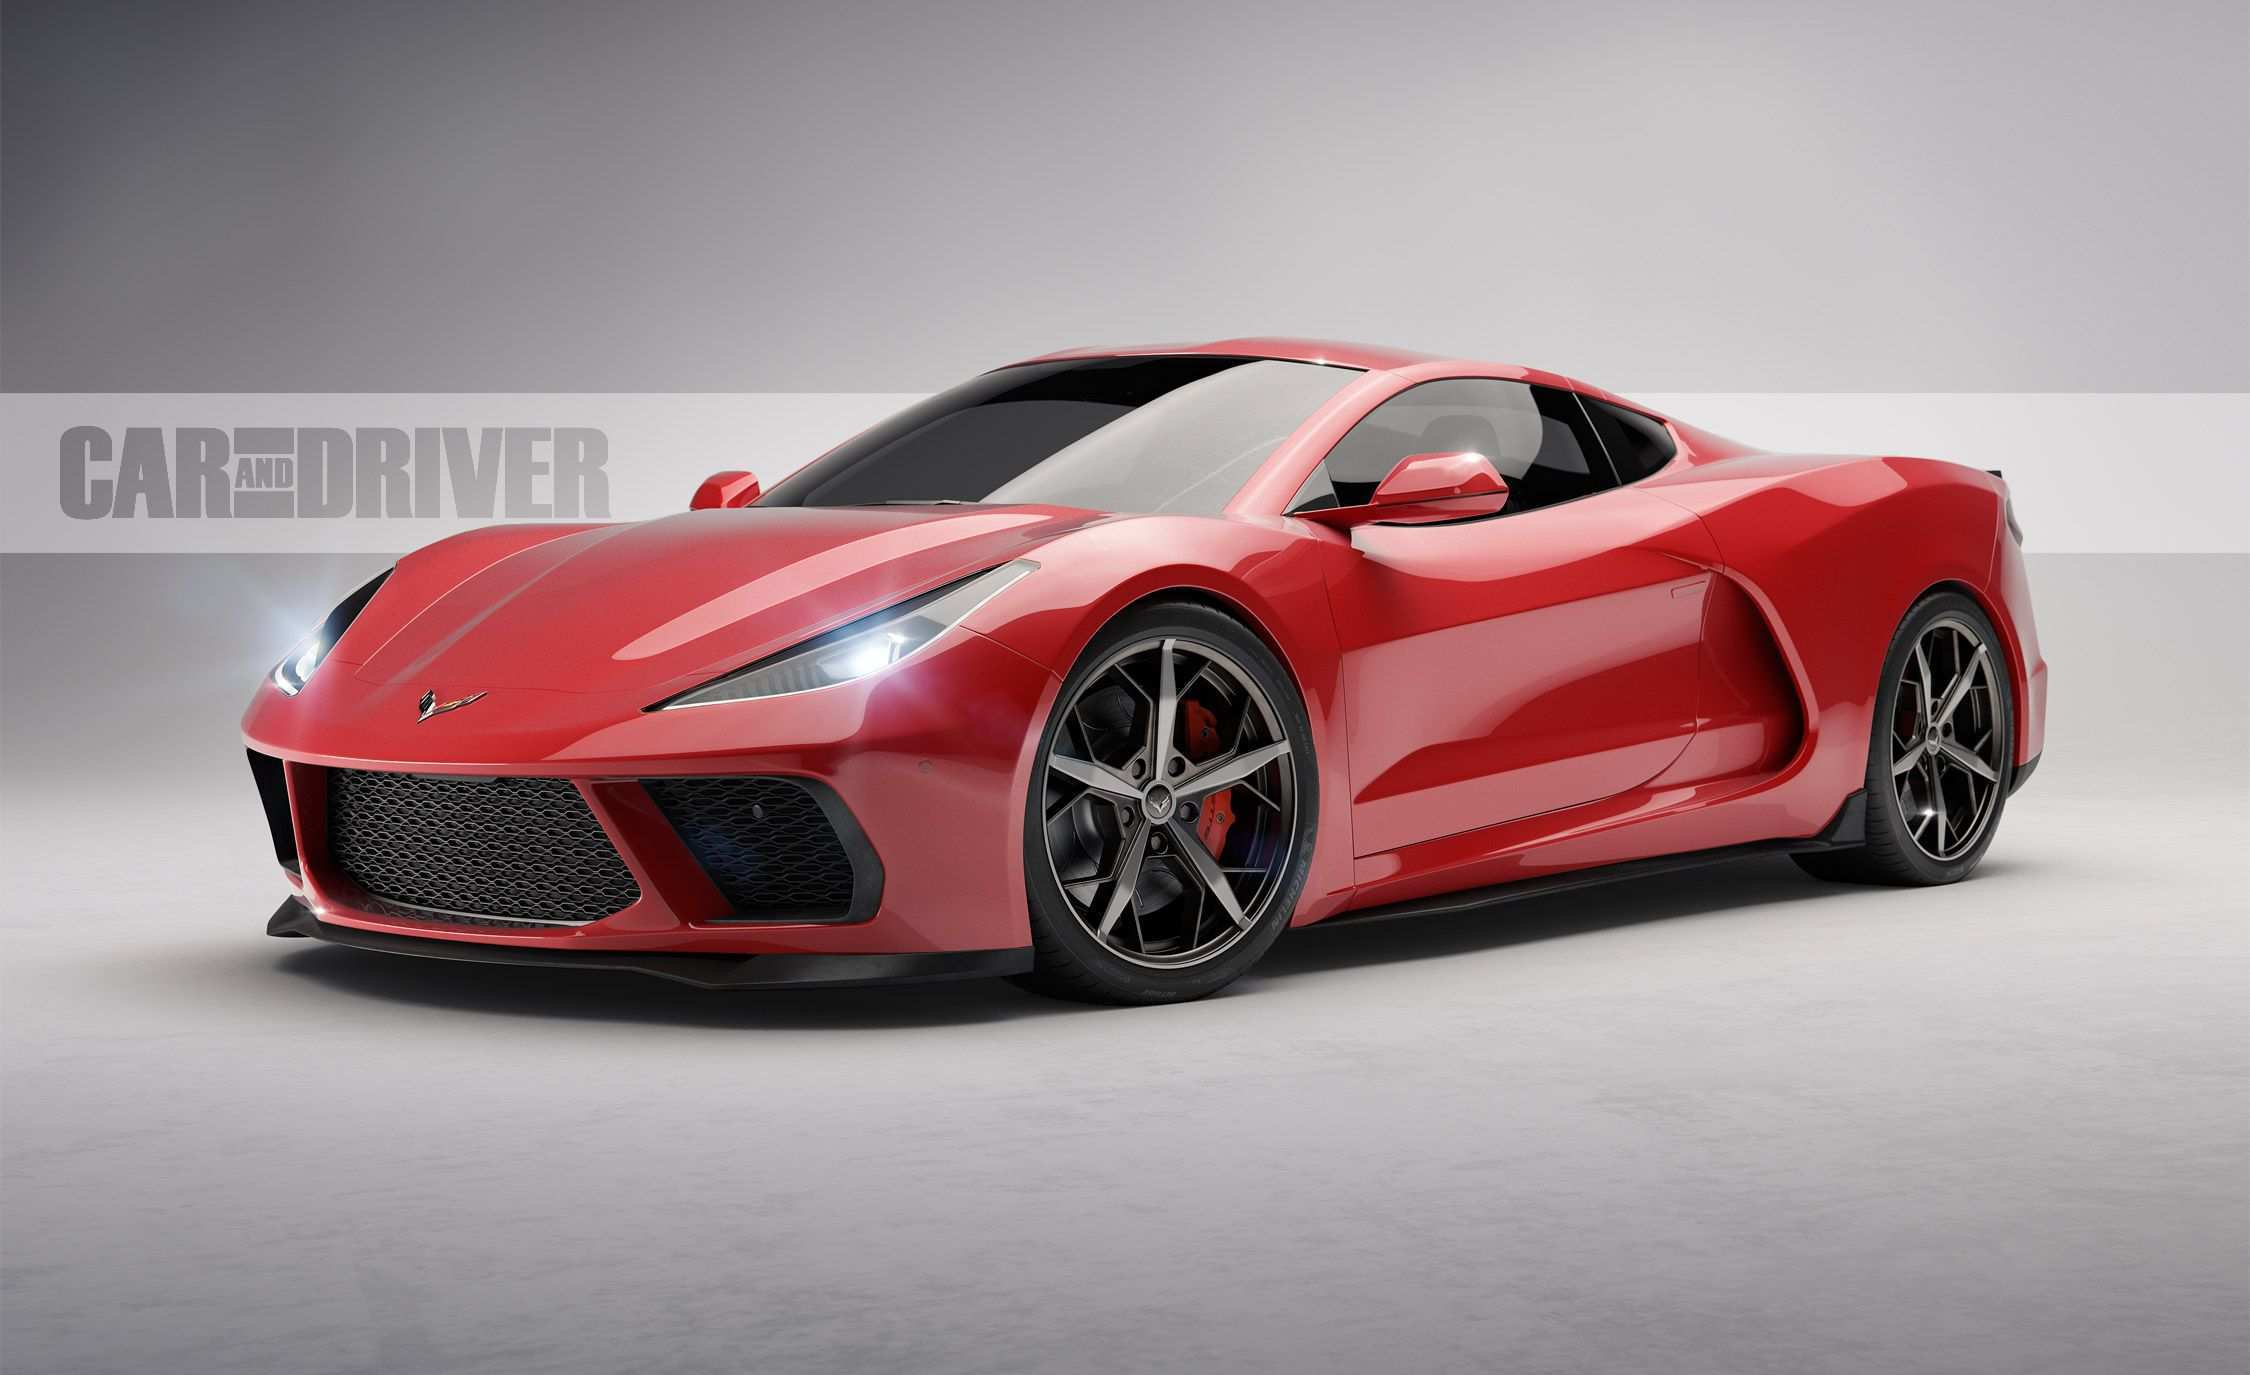 49 Great 2020 Chevy Corvette Zora Zr1 Specs and Review by 2020 Chevy Corvette Zora Zr1